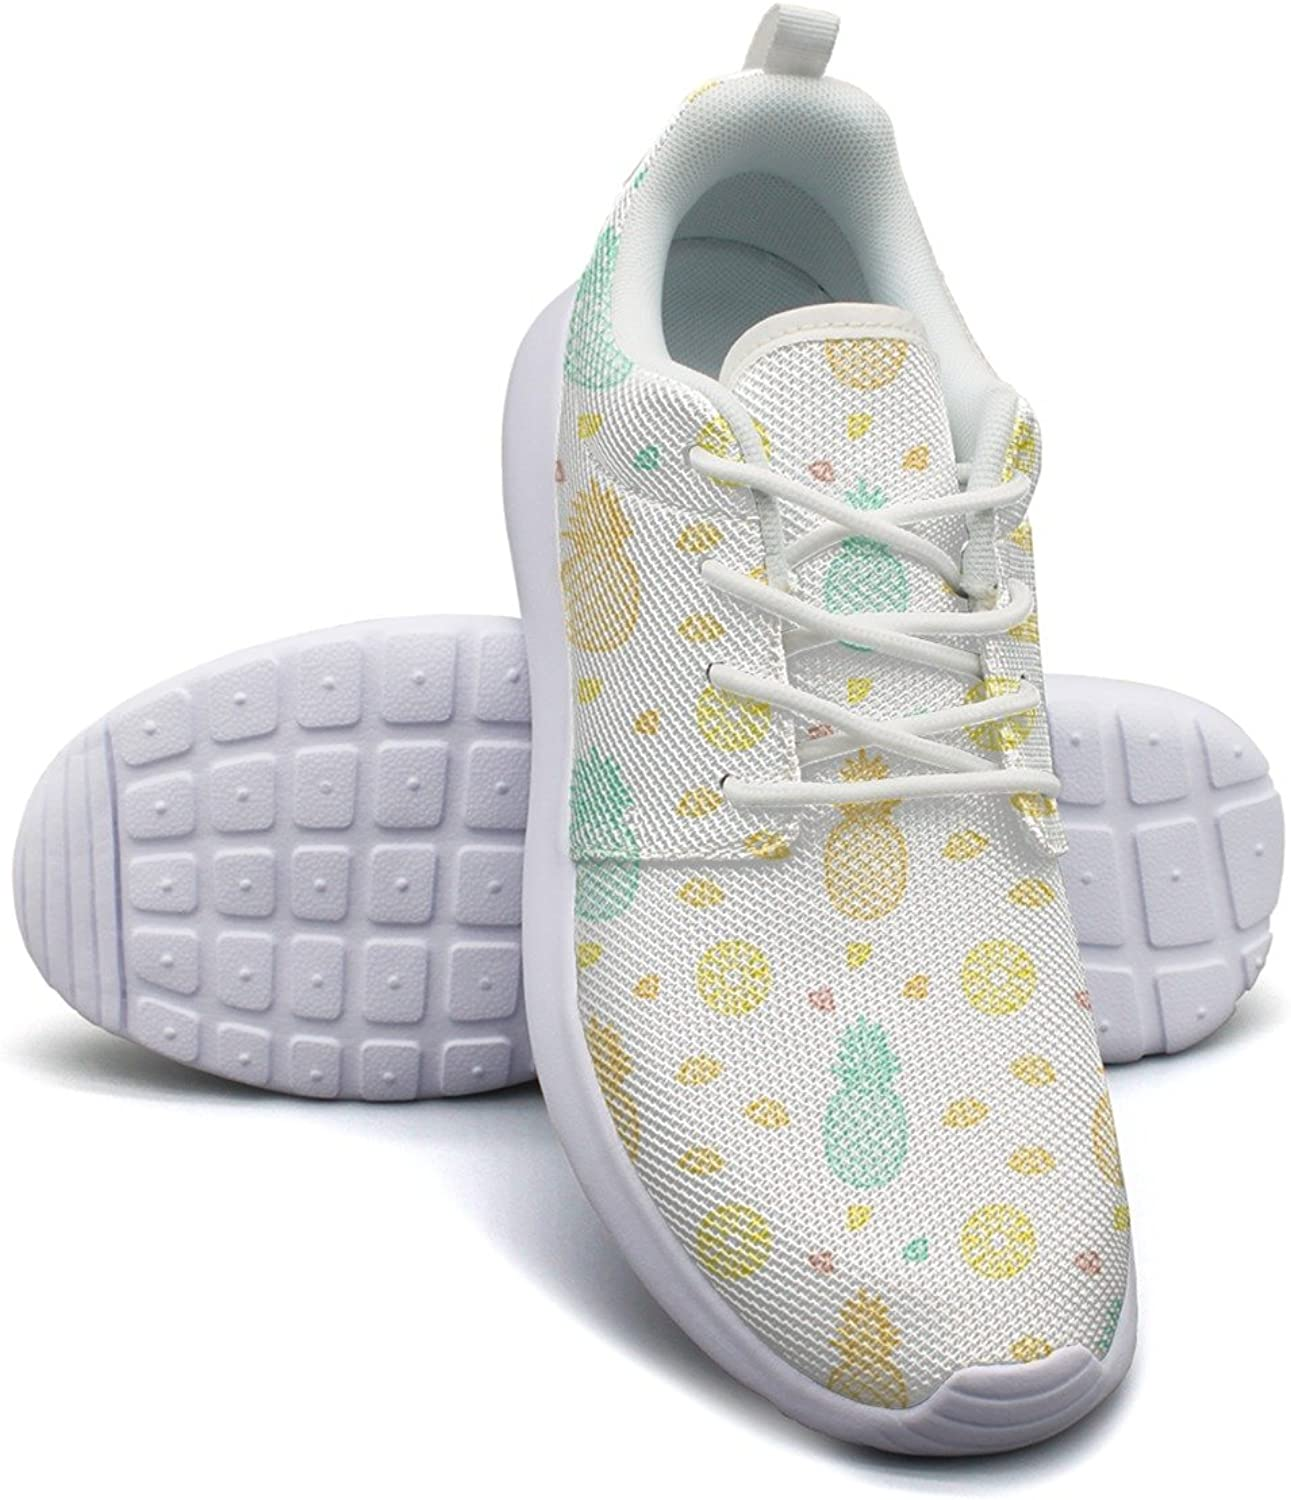 Pineapple Tropical Fruits Summer Women's Fashion Basketball shoes Vintage Mesh Lightweight Tennis Sneakers